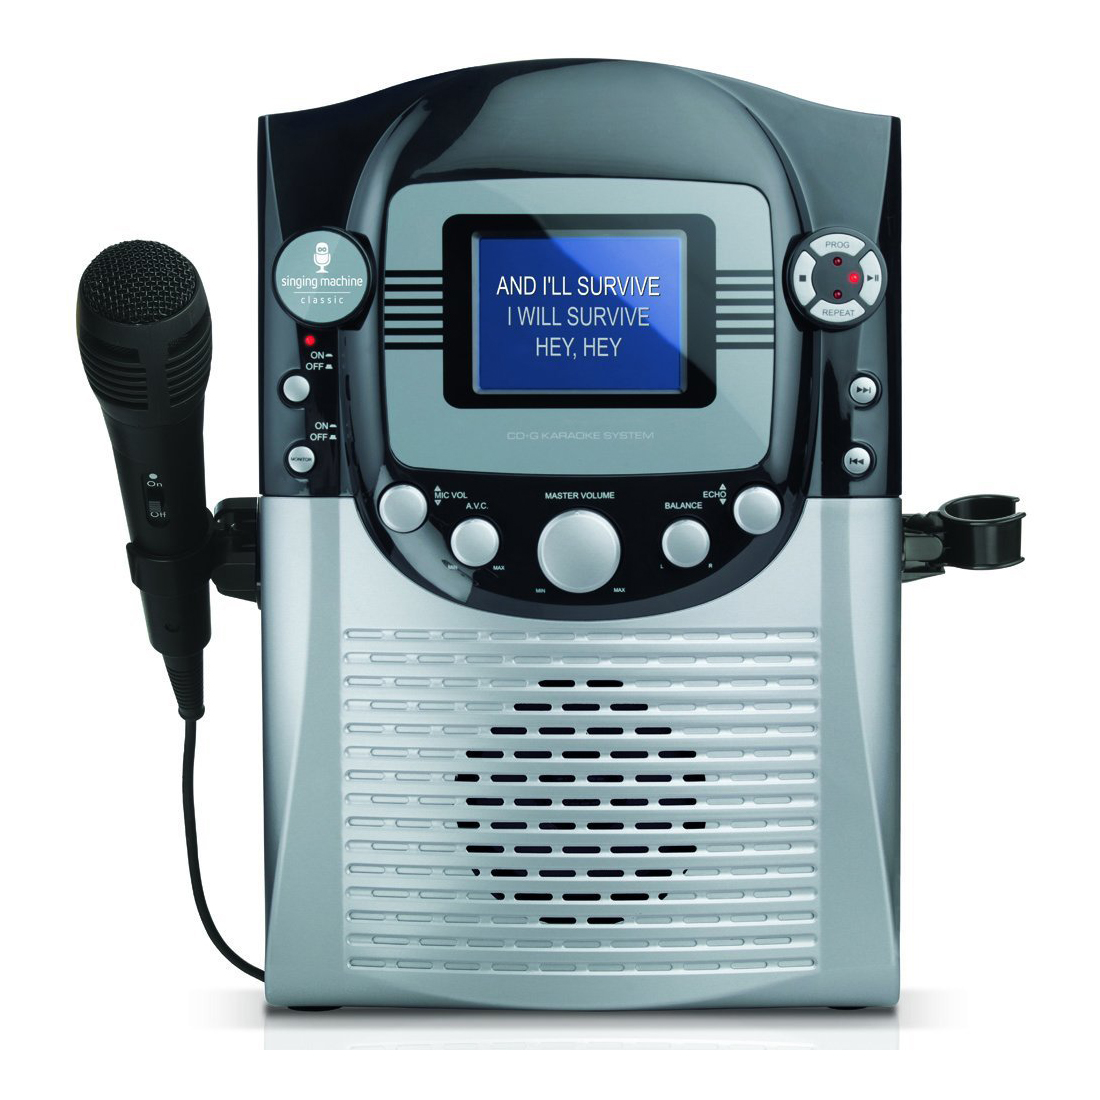 "Singing Machine STVG359 CD+G Karaoke System with 3.5"" CRT Color Monitor and Microphone"